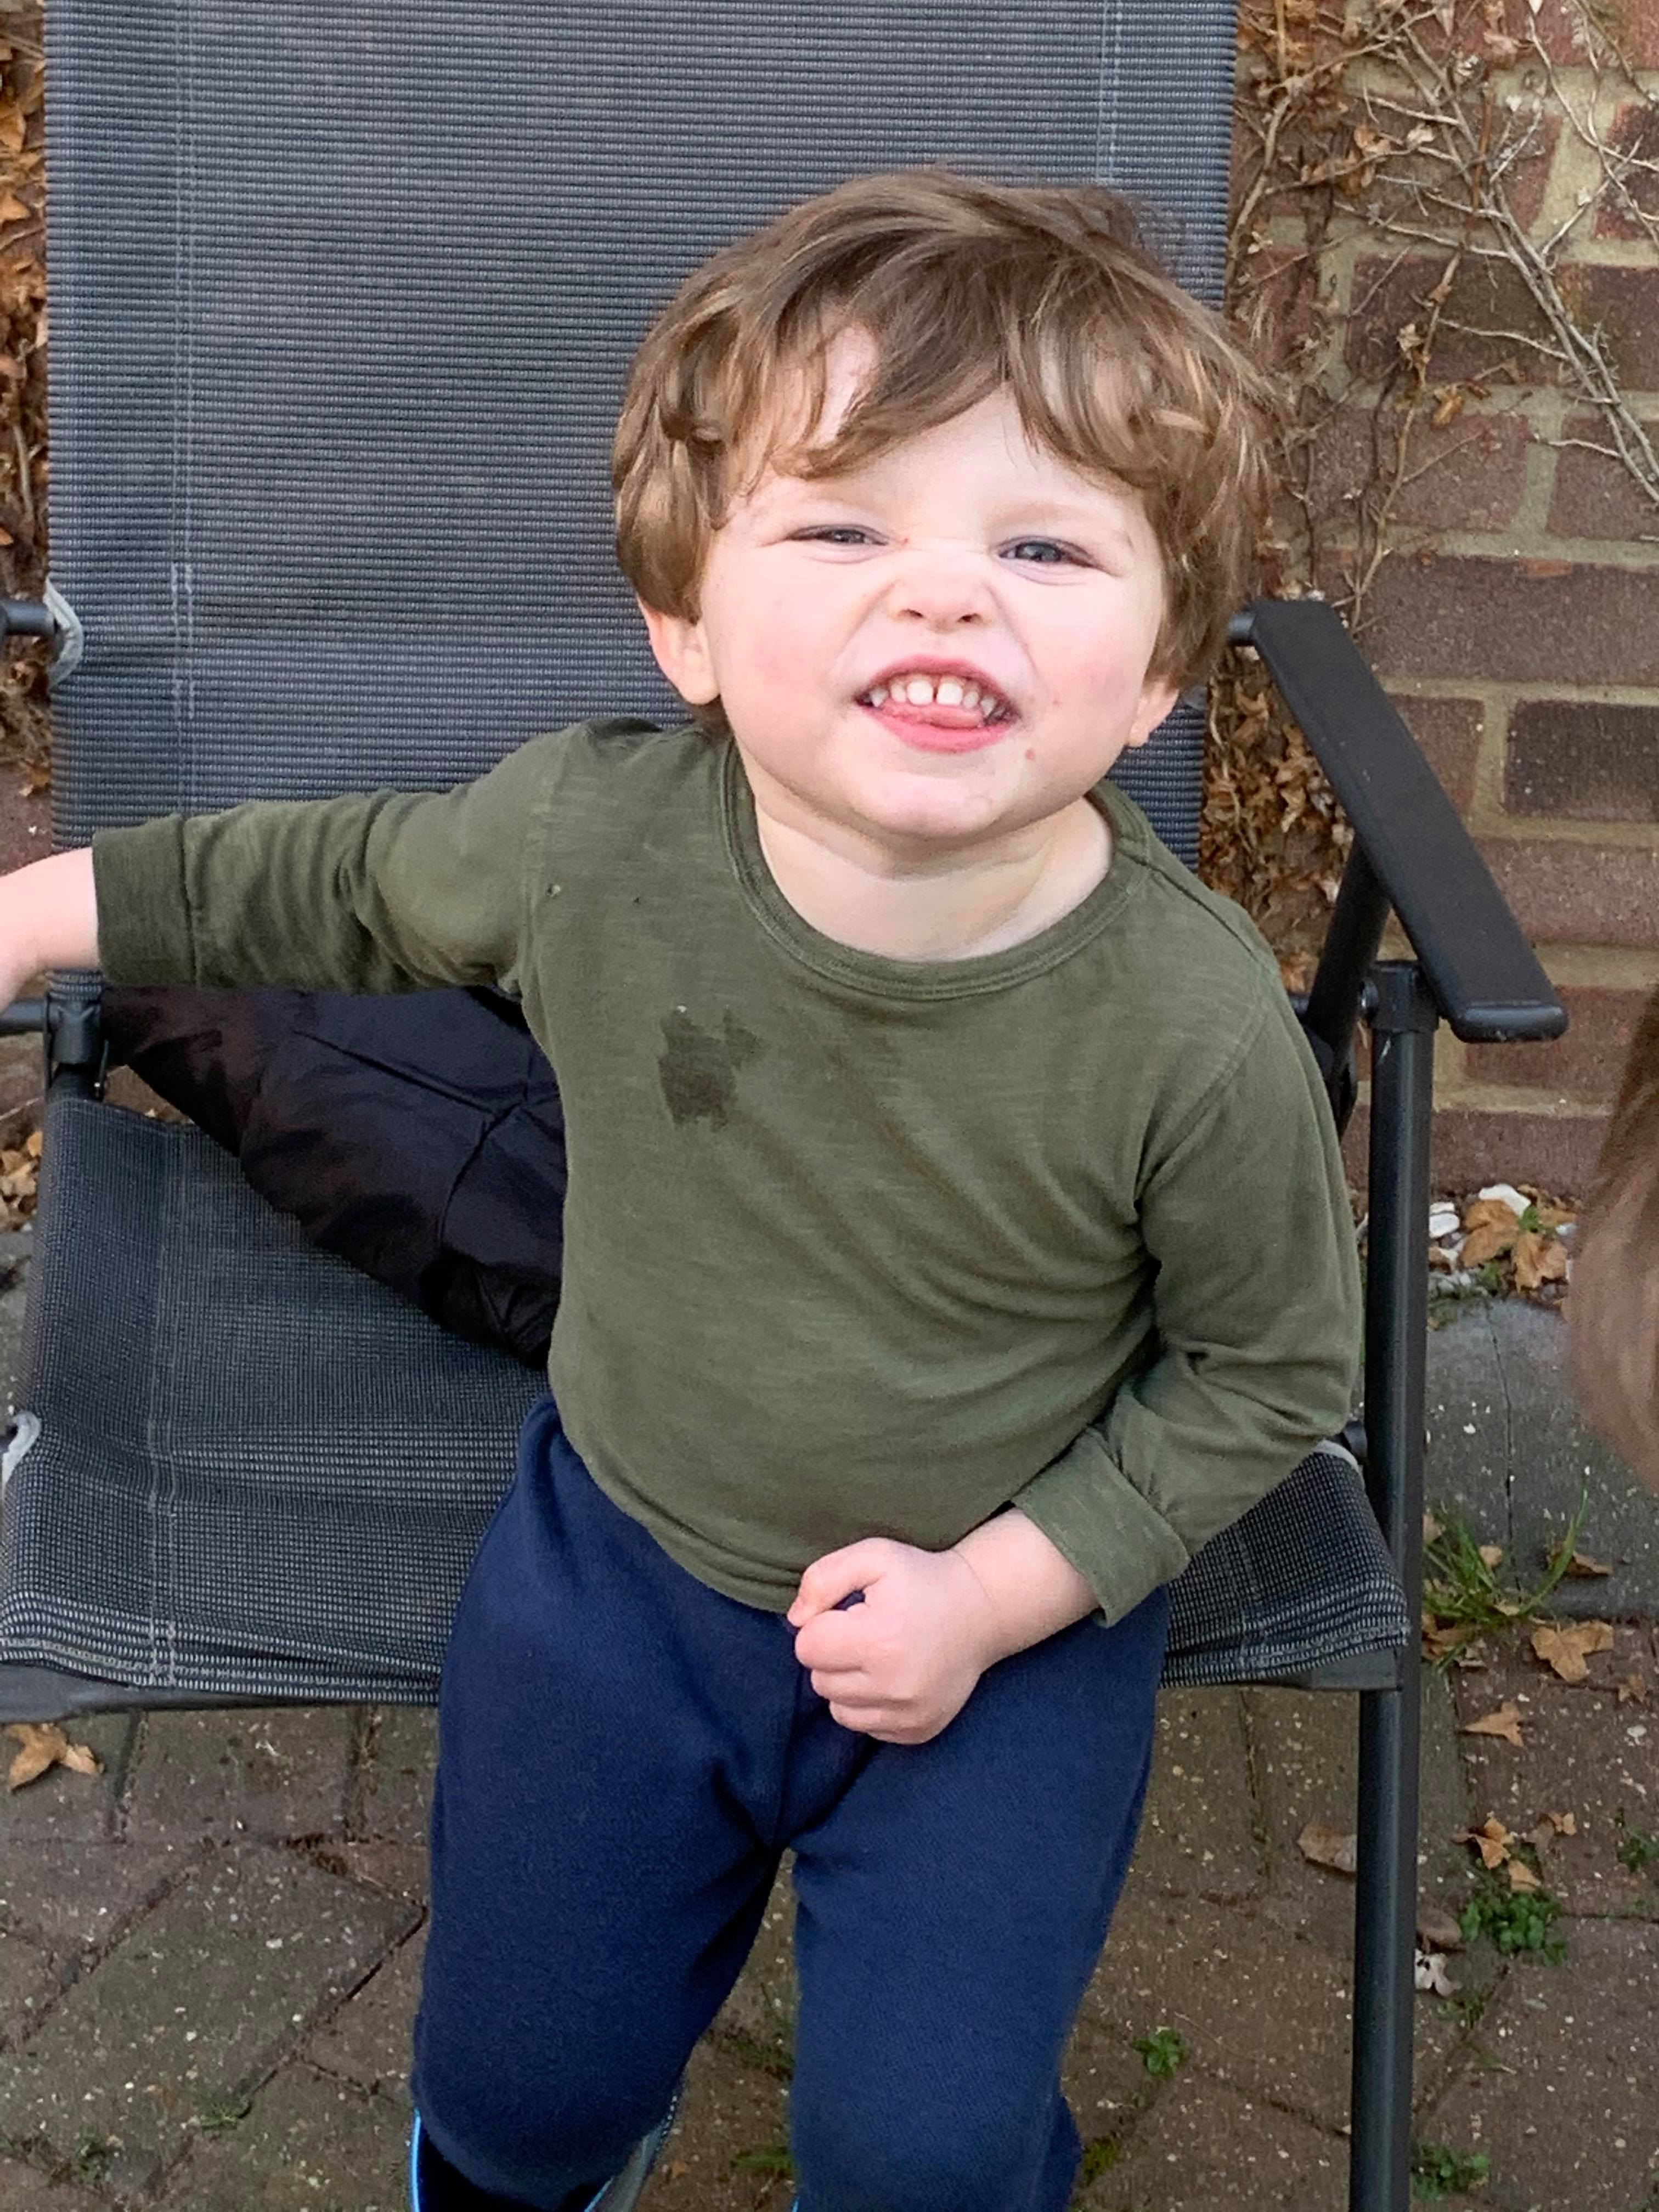 Mischievous toddler who took a bite out of all the Easter eggs